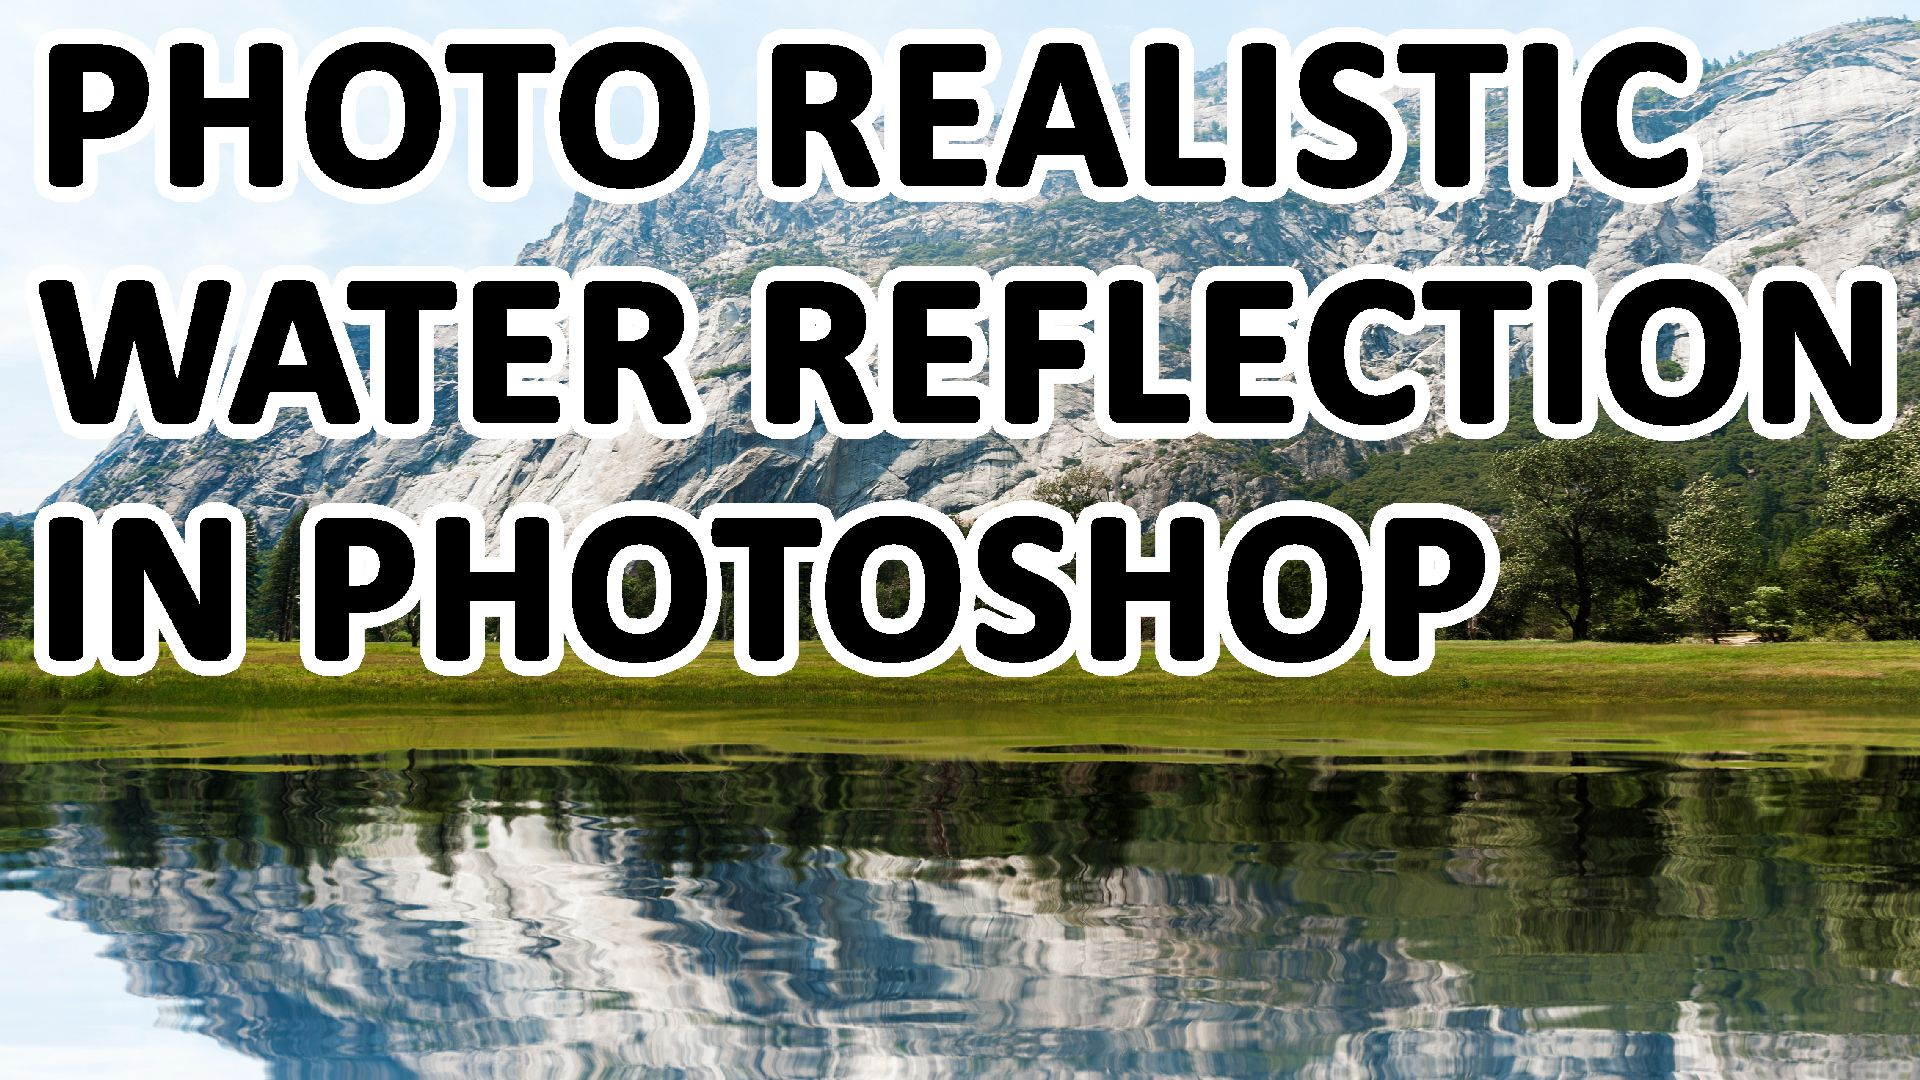 This tutorial will teach you how to create photo realistic water reflection in Photoshop. This can be useful not only when you want to add a new body of water, like a lake, to the photo, but also when you want to partially replace an existing body of water, make it bigger, or hide objects around it. https://youtu.be/Vp2JMdfM418